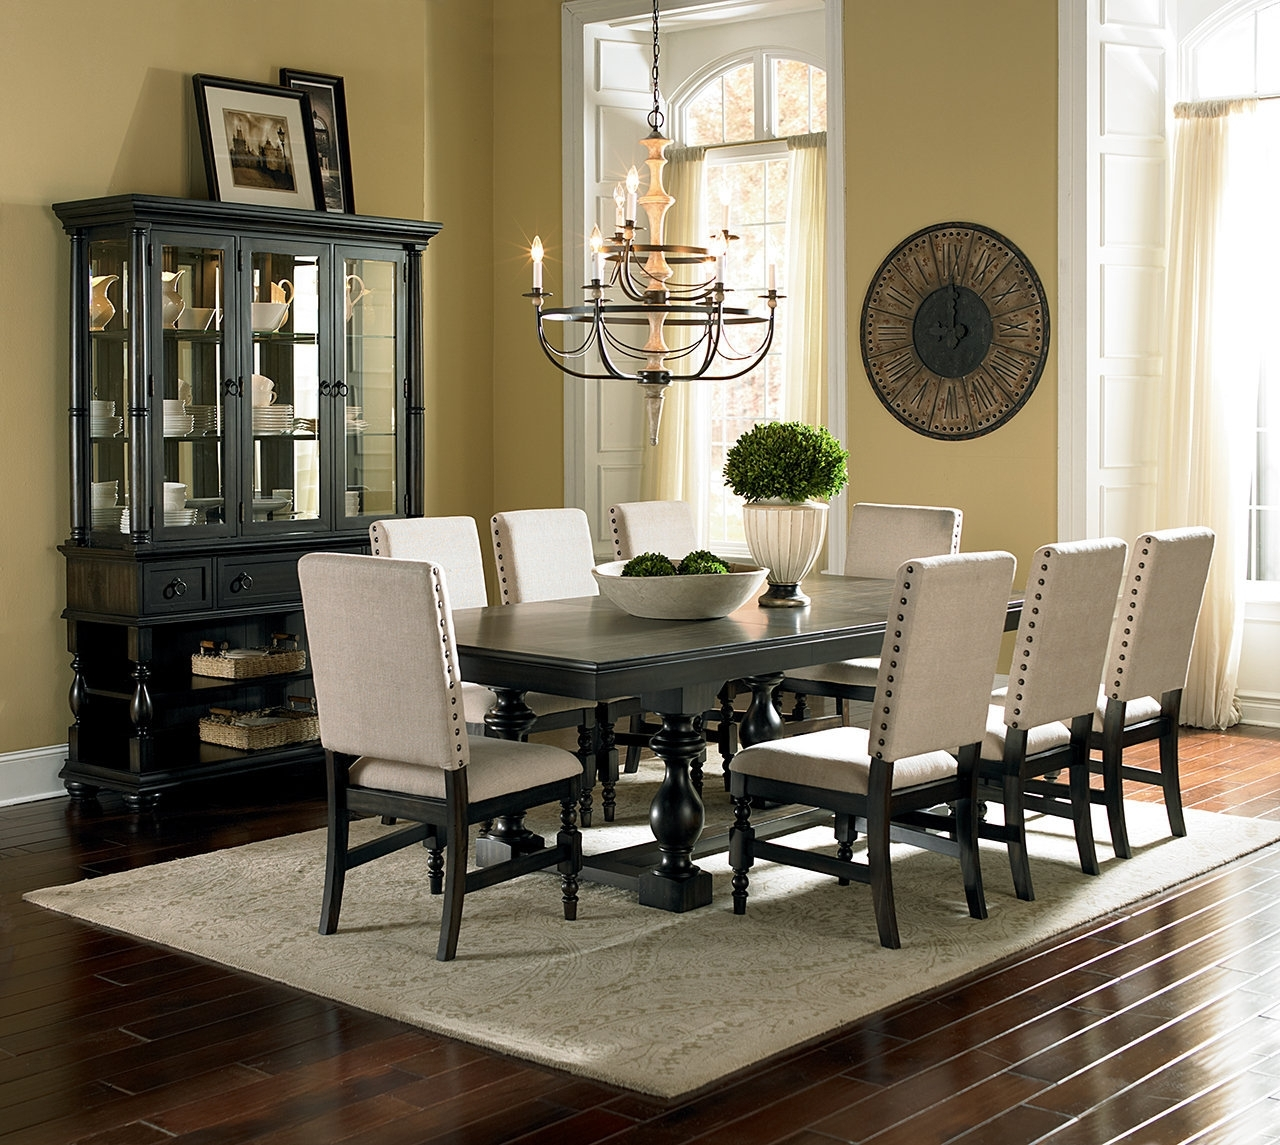 Plain Design Dining Room Sets With Fabric Chairs Norwood 6 Piece In Current Norwood 6 Piece Rectangular Extension Dining Sets With Upholstered Side Chairs (View 11 of 25)